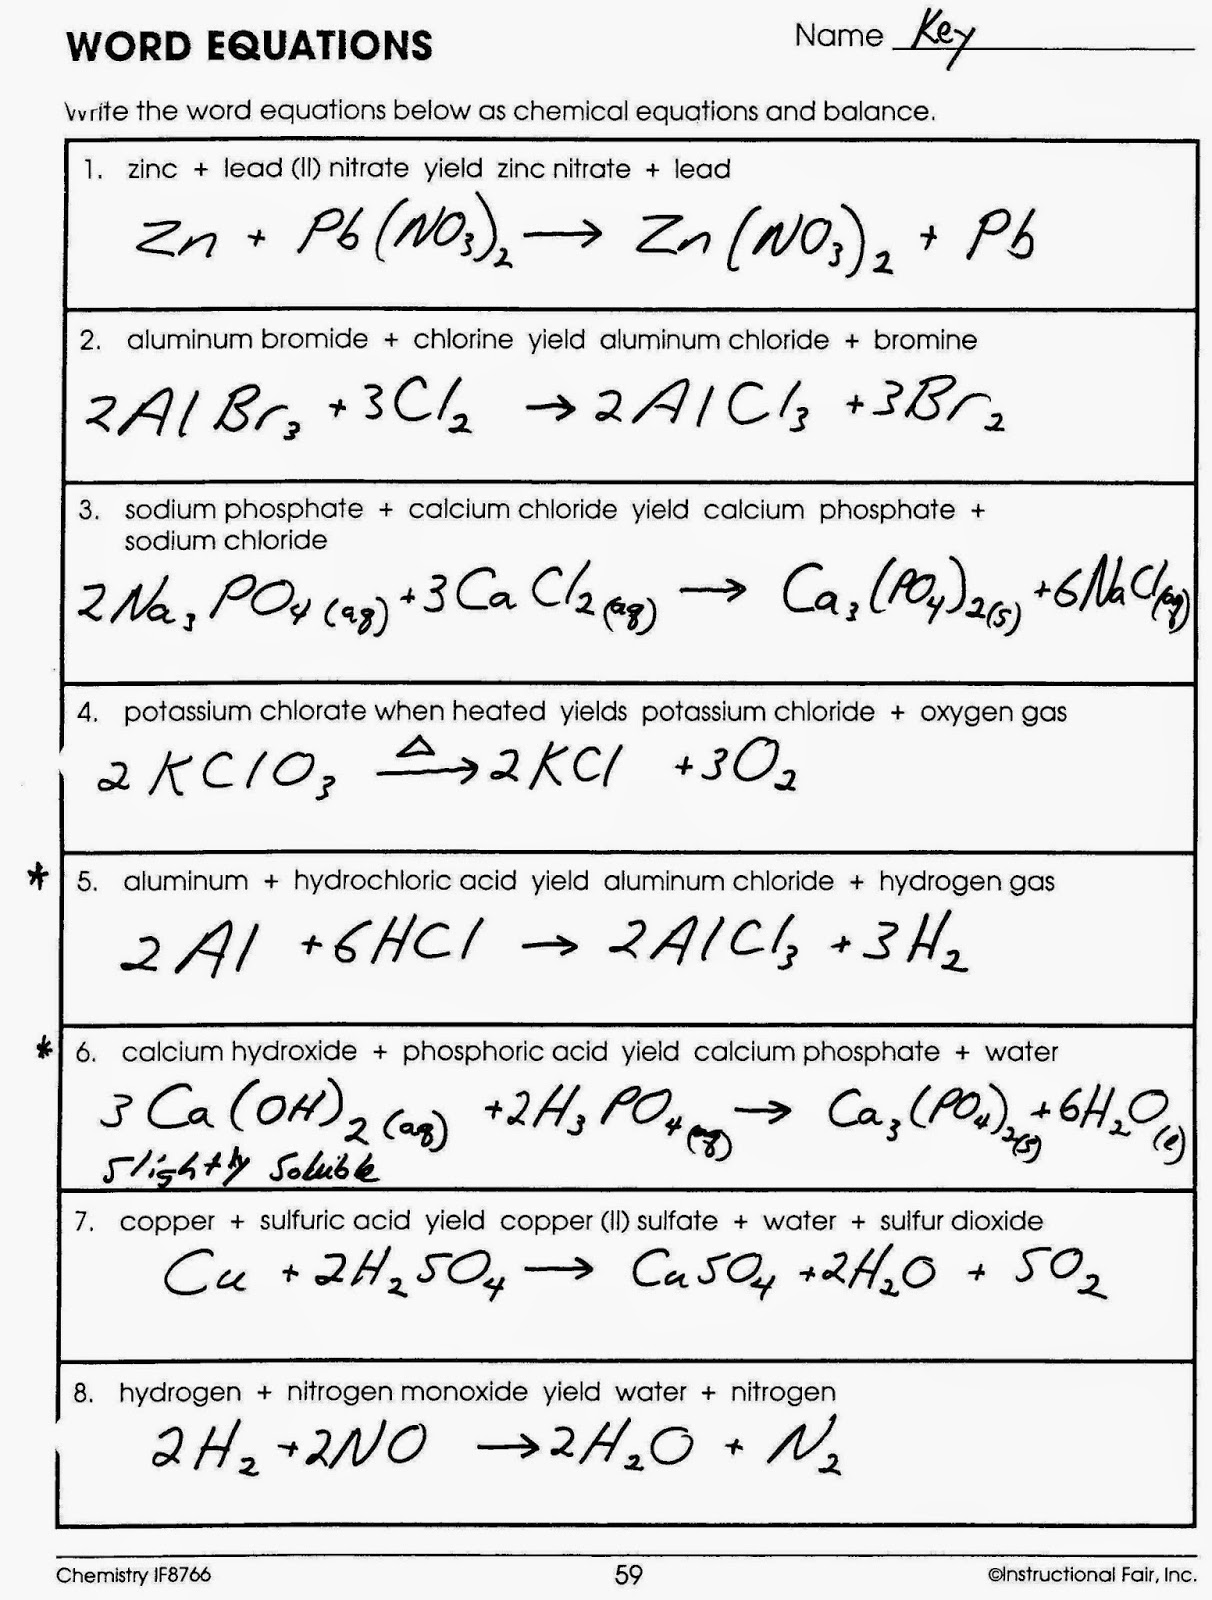 Balancing Chemical Equations Chapter 7 Worksheet 1 Answers – Balancing Chemical Equations Worksheet 1 Answers